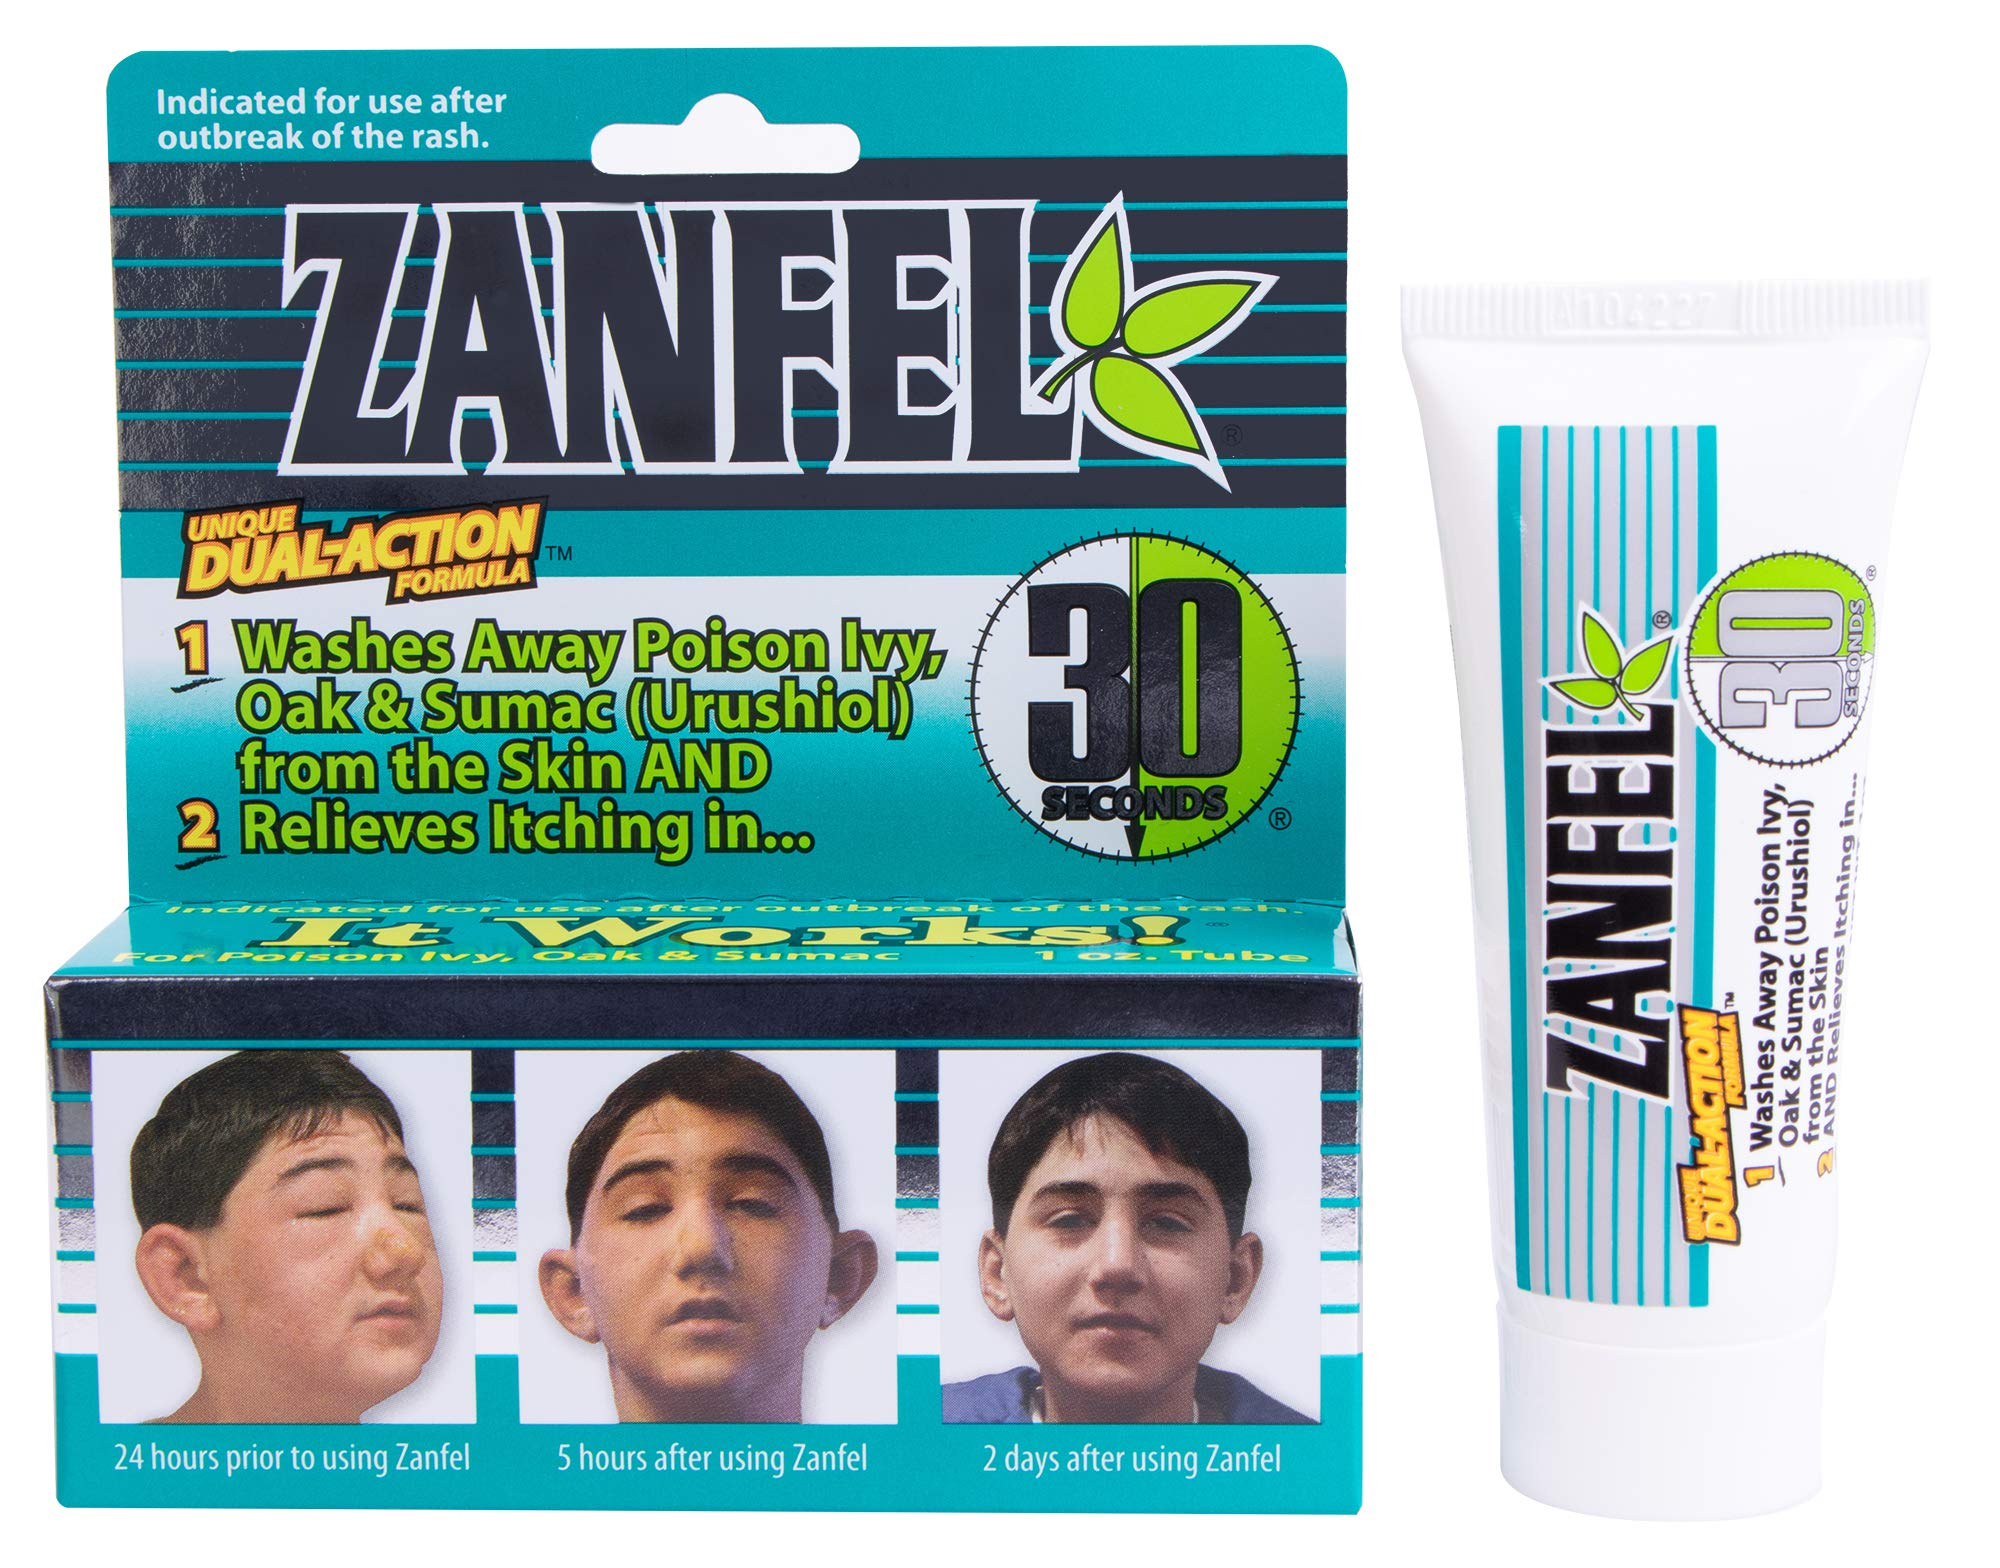 ZANFEL Poison Ivy, Oak & Sumac Wash - Topical Solution for The Reaction Caused by Exposure to Poison Ivy, Poison Oak, and Sumac (1 Fluid Ounce / 29 Milliliter) by Zanfel